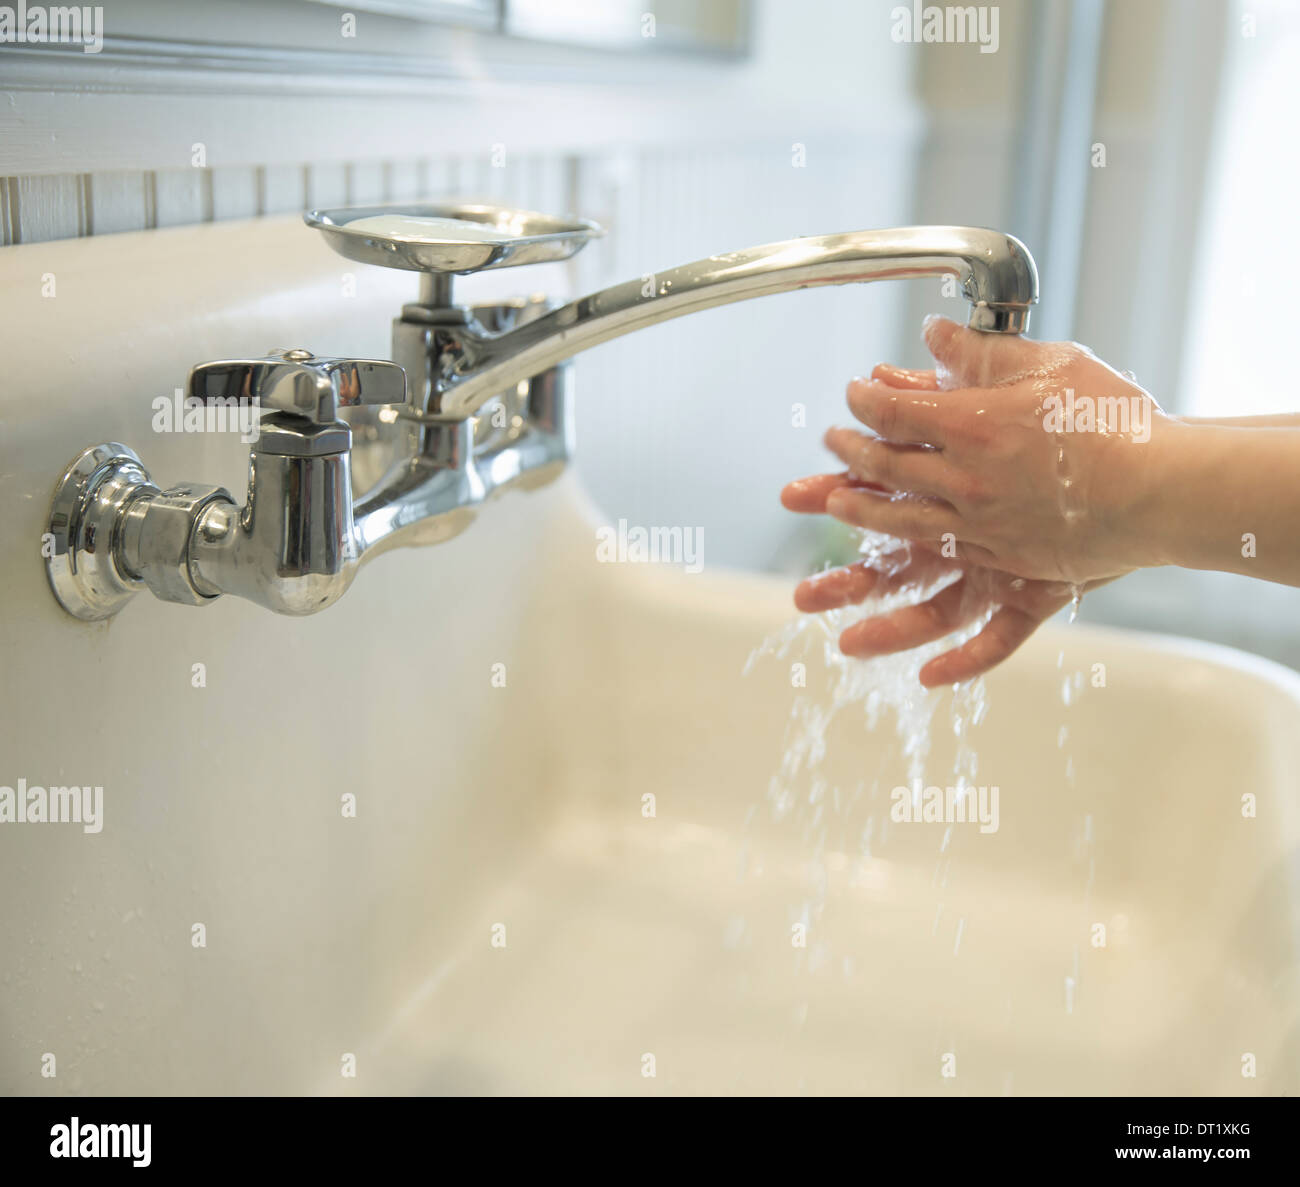 A boy washing his hands under the bathroom tap - Stock Image